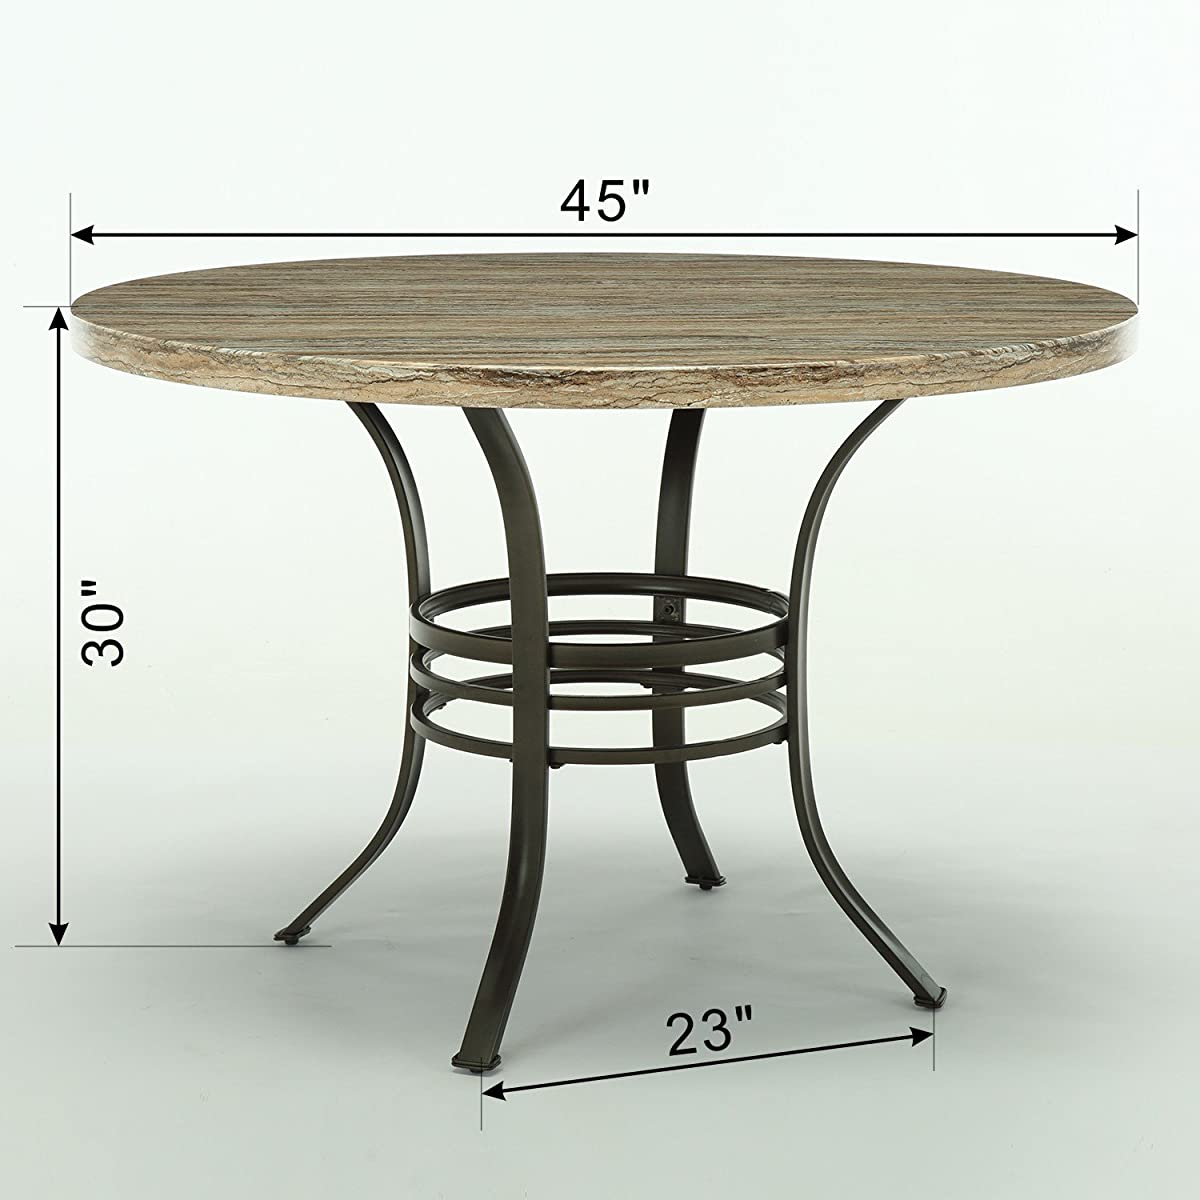 "Bestmart Inc 45"" Diameter Round Dining Table Kitchen Pub Bistro Bar Breakfast Table w/ Faux Wood top Metal Frame"